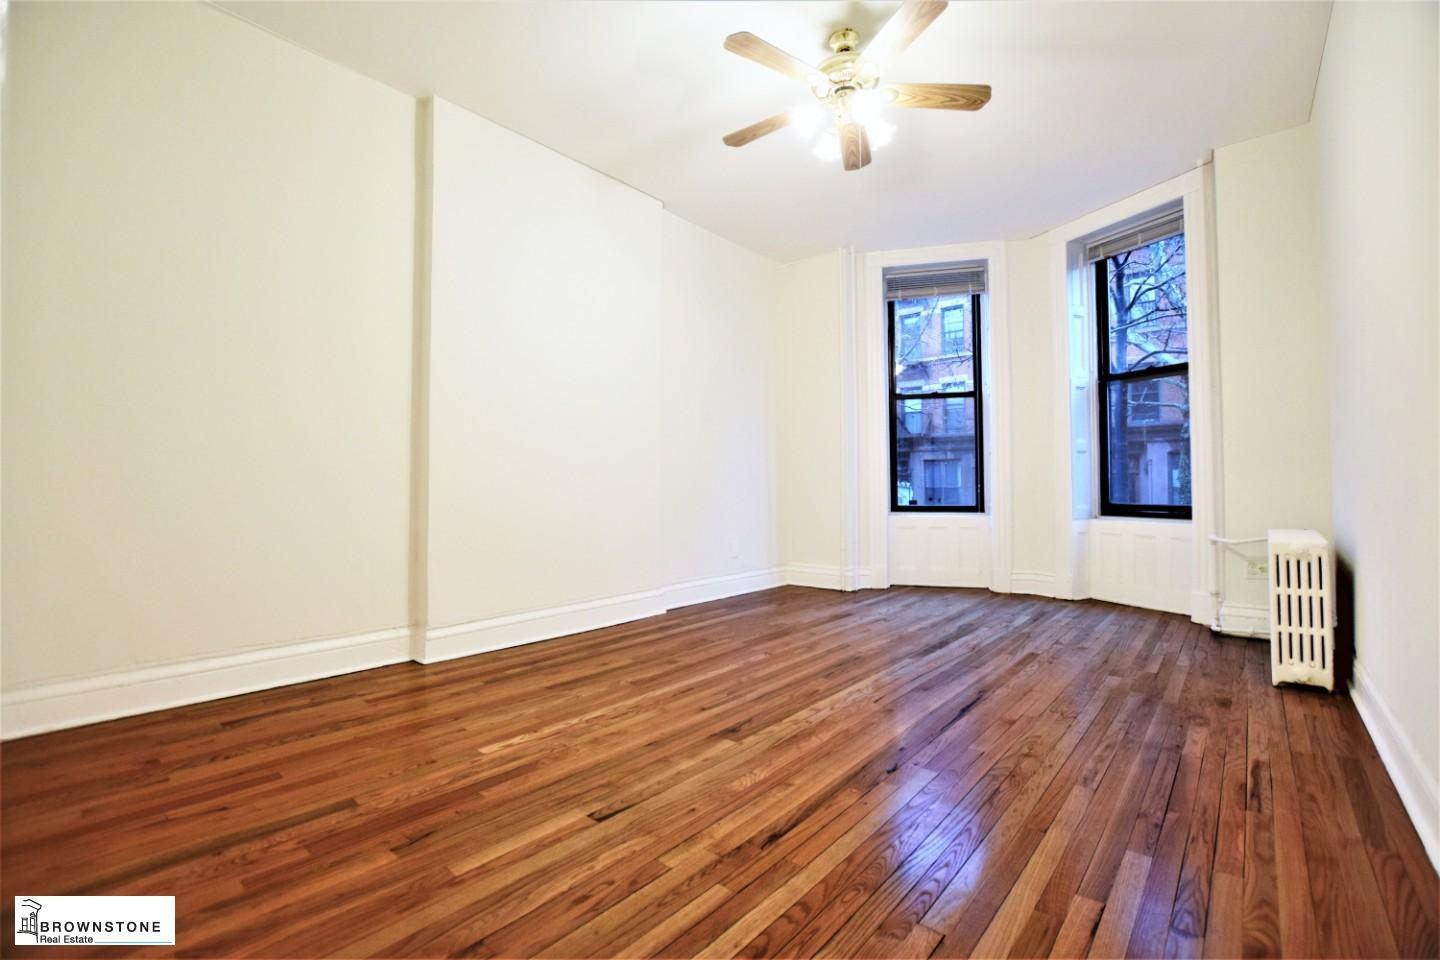 168 President, Apt 1R, Brooklyn, New York 11231